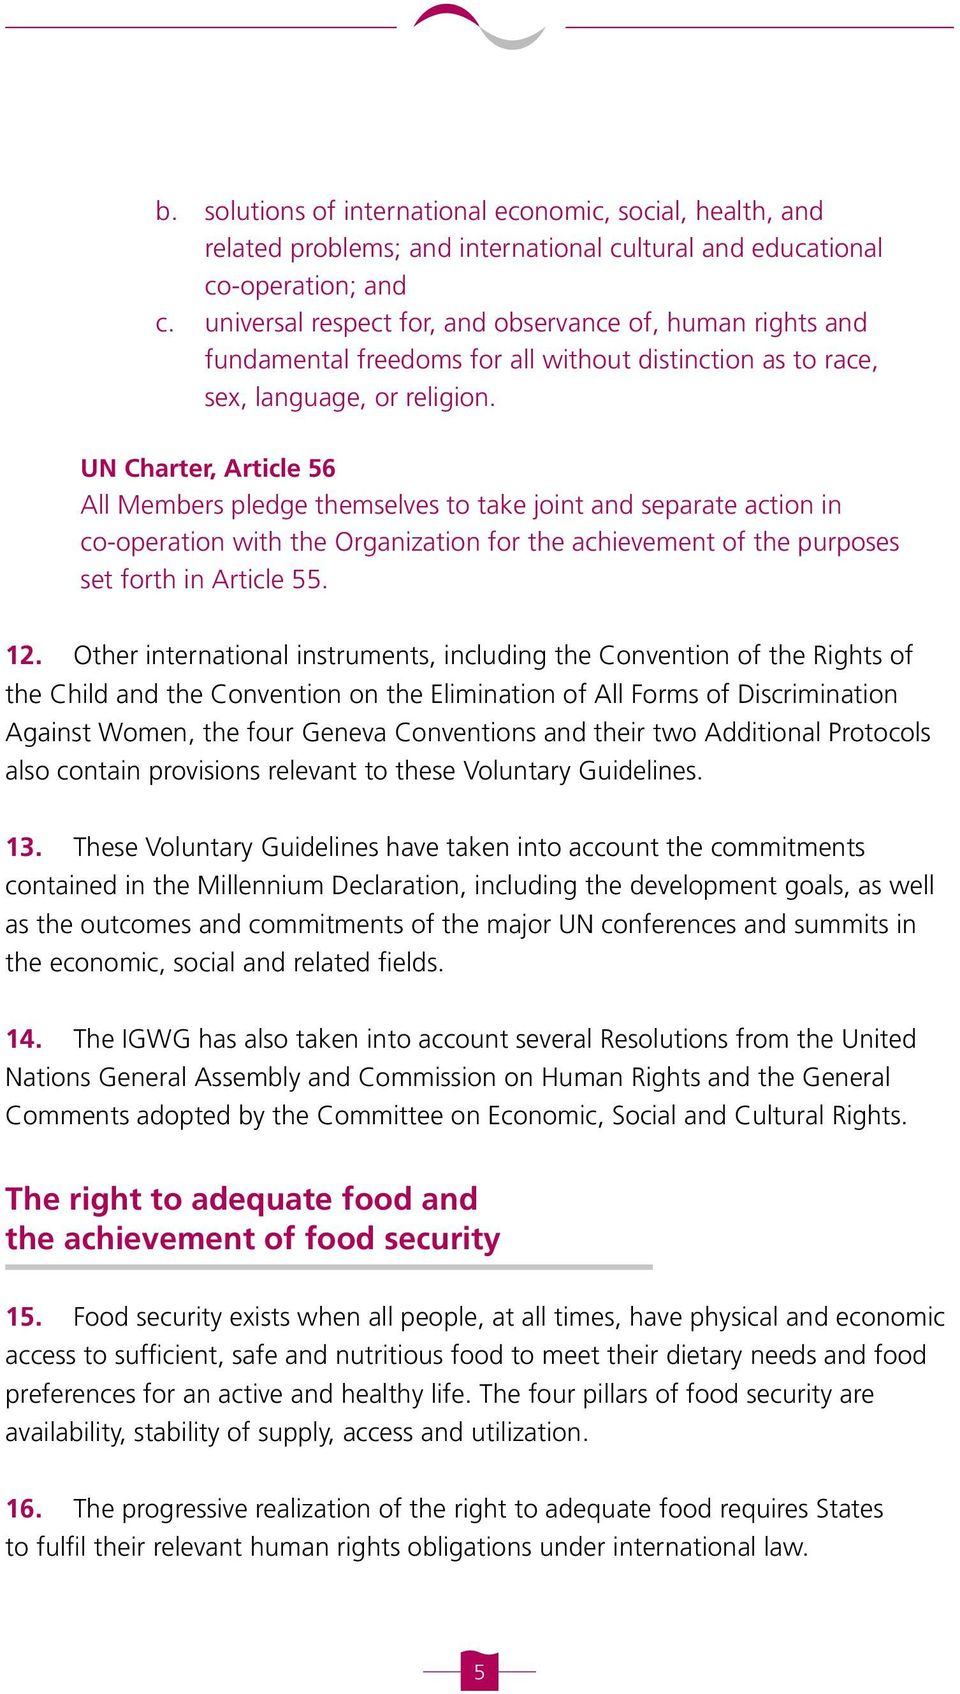 UN Charter, Article 56 All Members pledge themselves to take joint and separate action in co-operation with the Organization for the achievement of the purposes set forth in Article 55. 12.